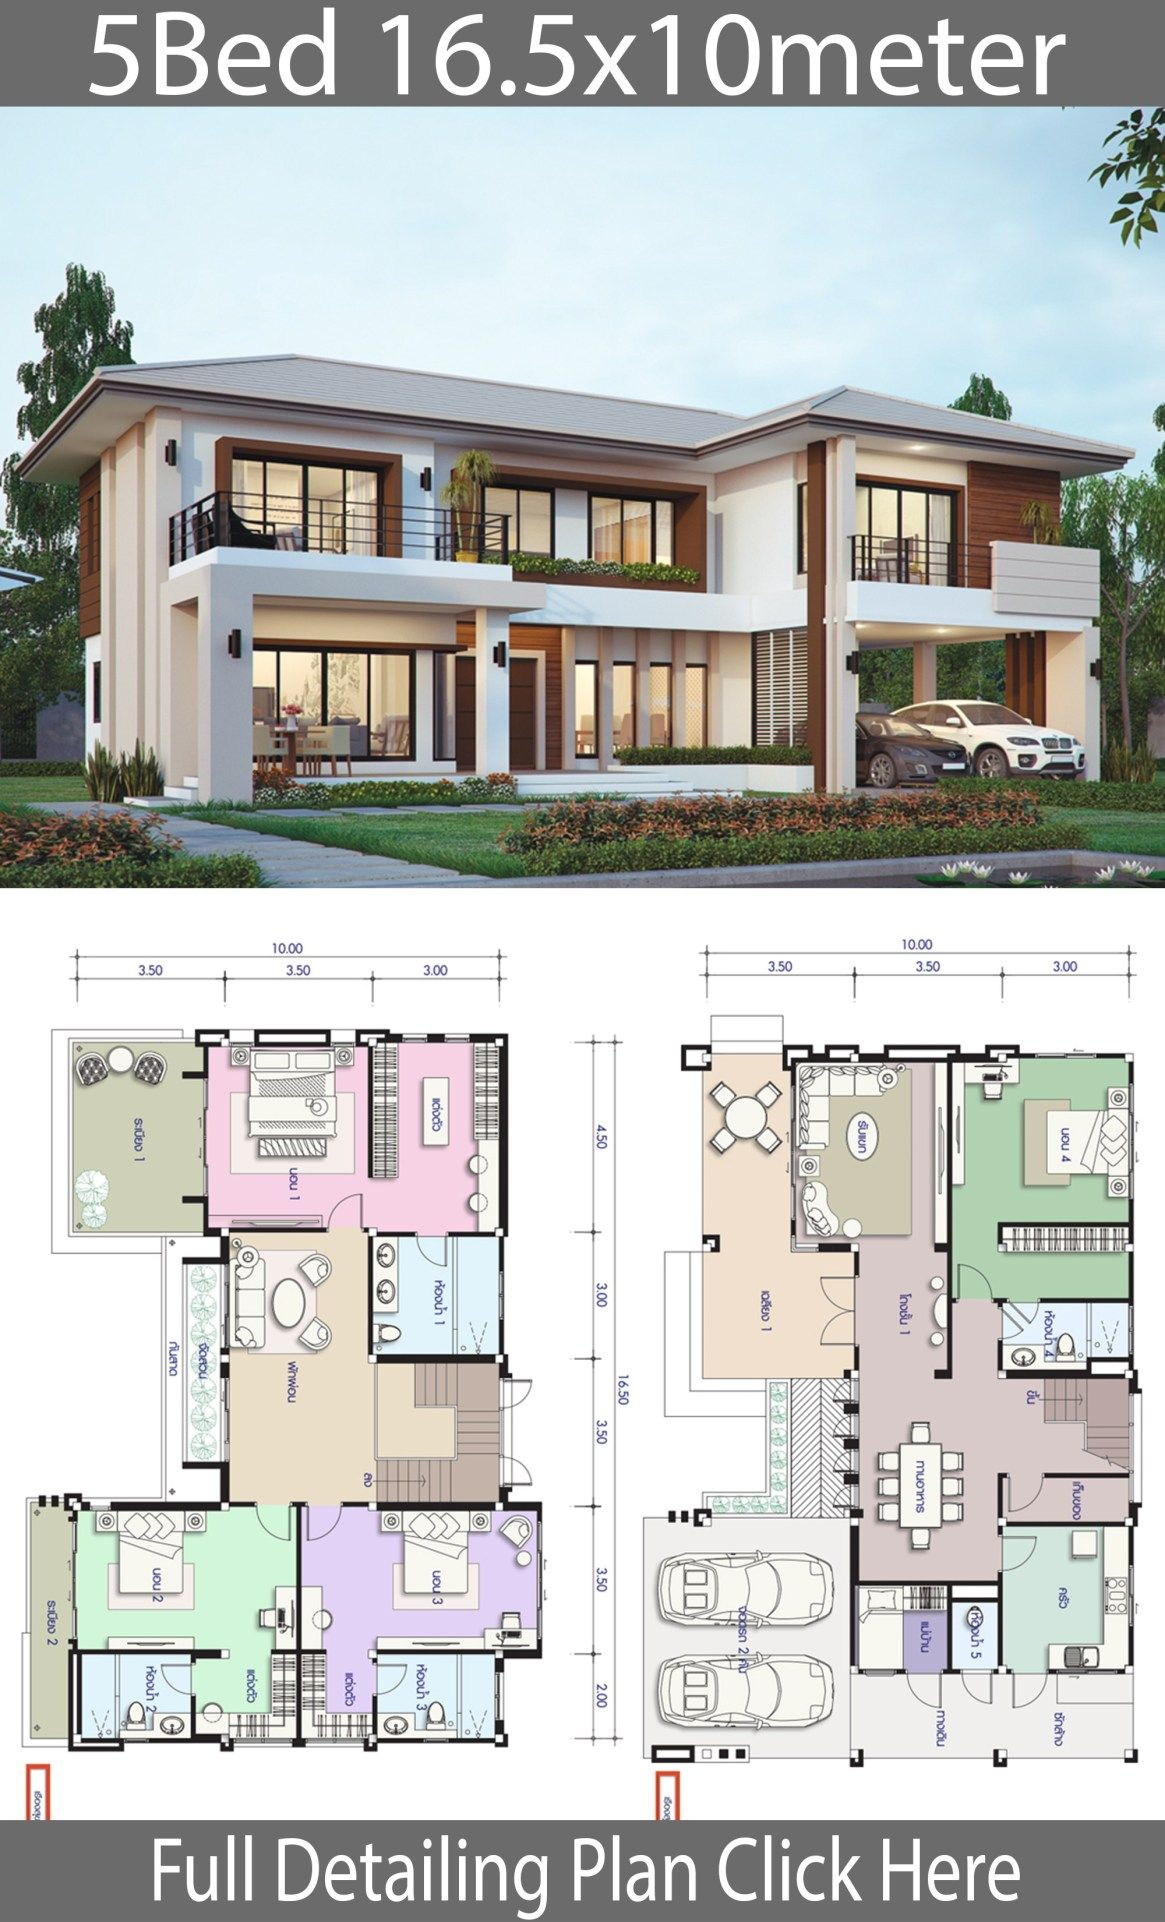 House Design Plan 16 5x10m With 5 Bedrooms Home Design With Plansearch House Projects Architecture Architectural House Plans 2 Storey House Design